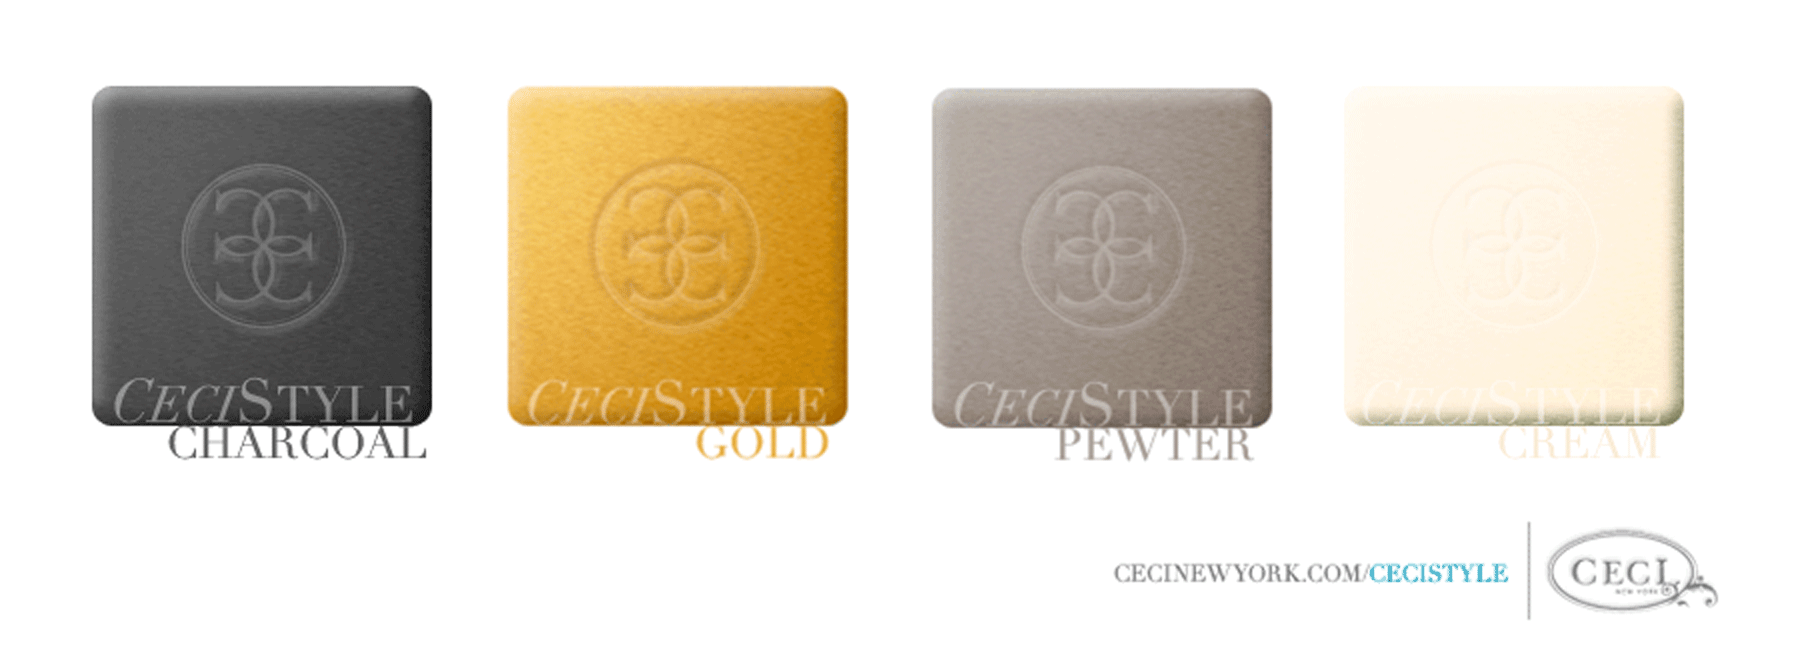 Ceci's Color Stories - Pewter & Gold Wedding Colors - color swatches, charcoal, gold, pewter, cream, wedding